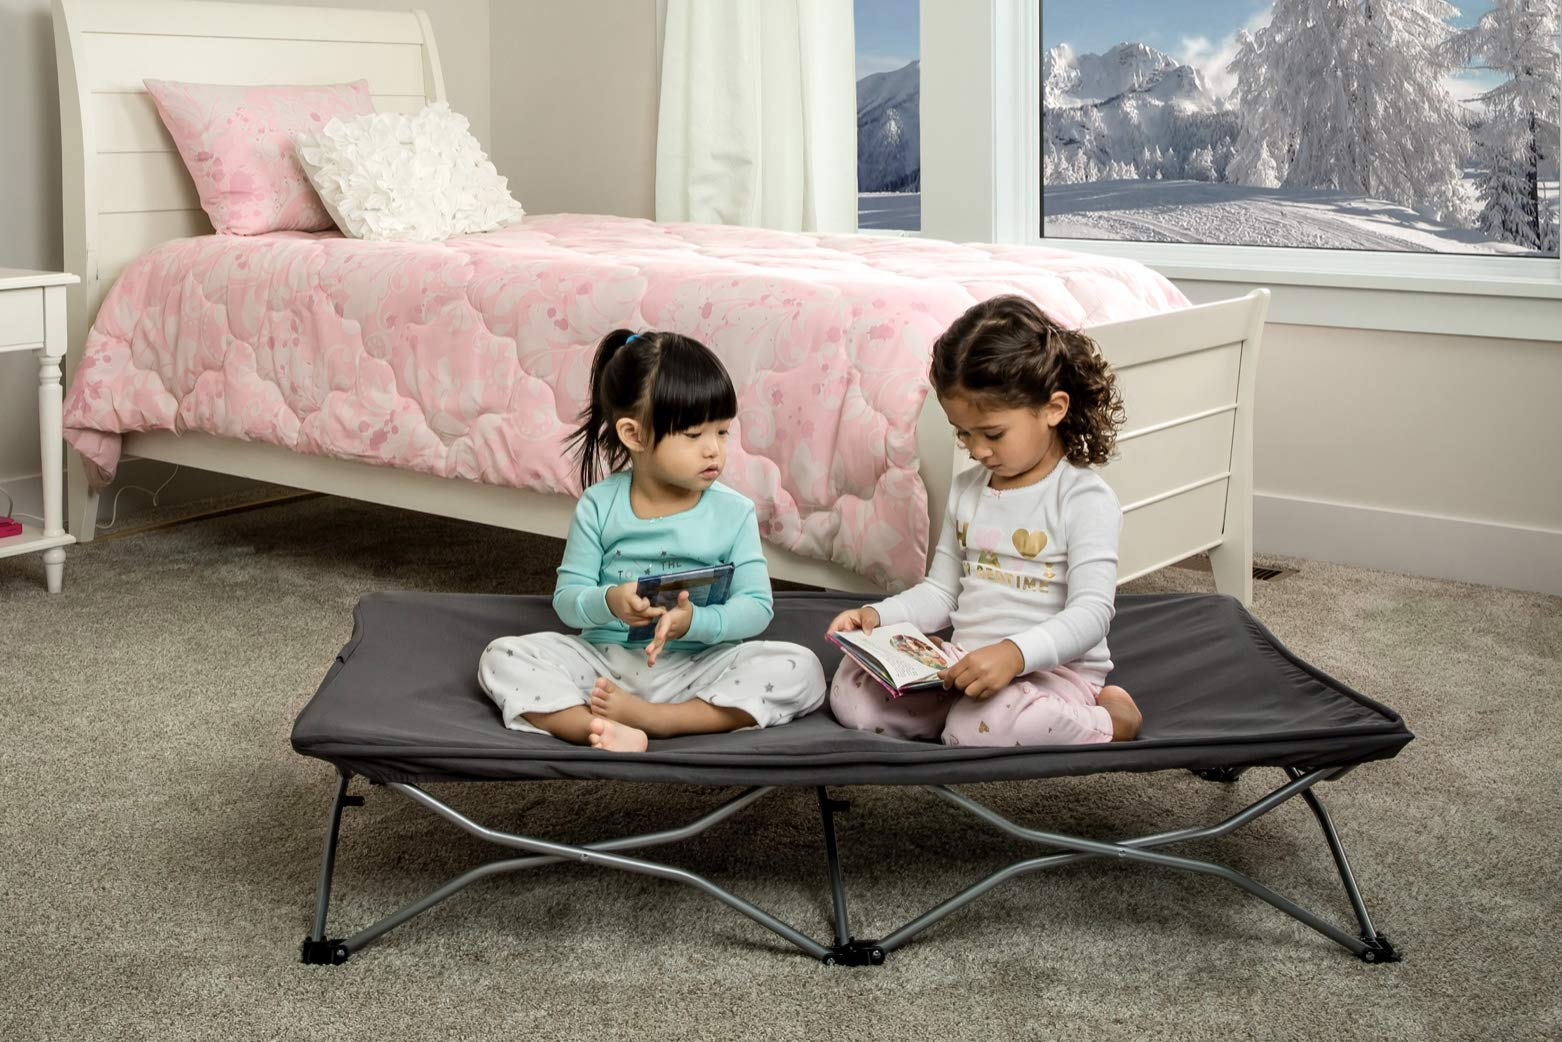 Amazon.com : Regalo My Cot Portable Toddler Bed, Includes ...